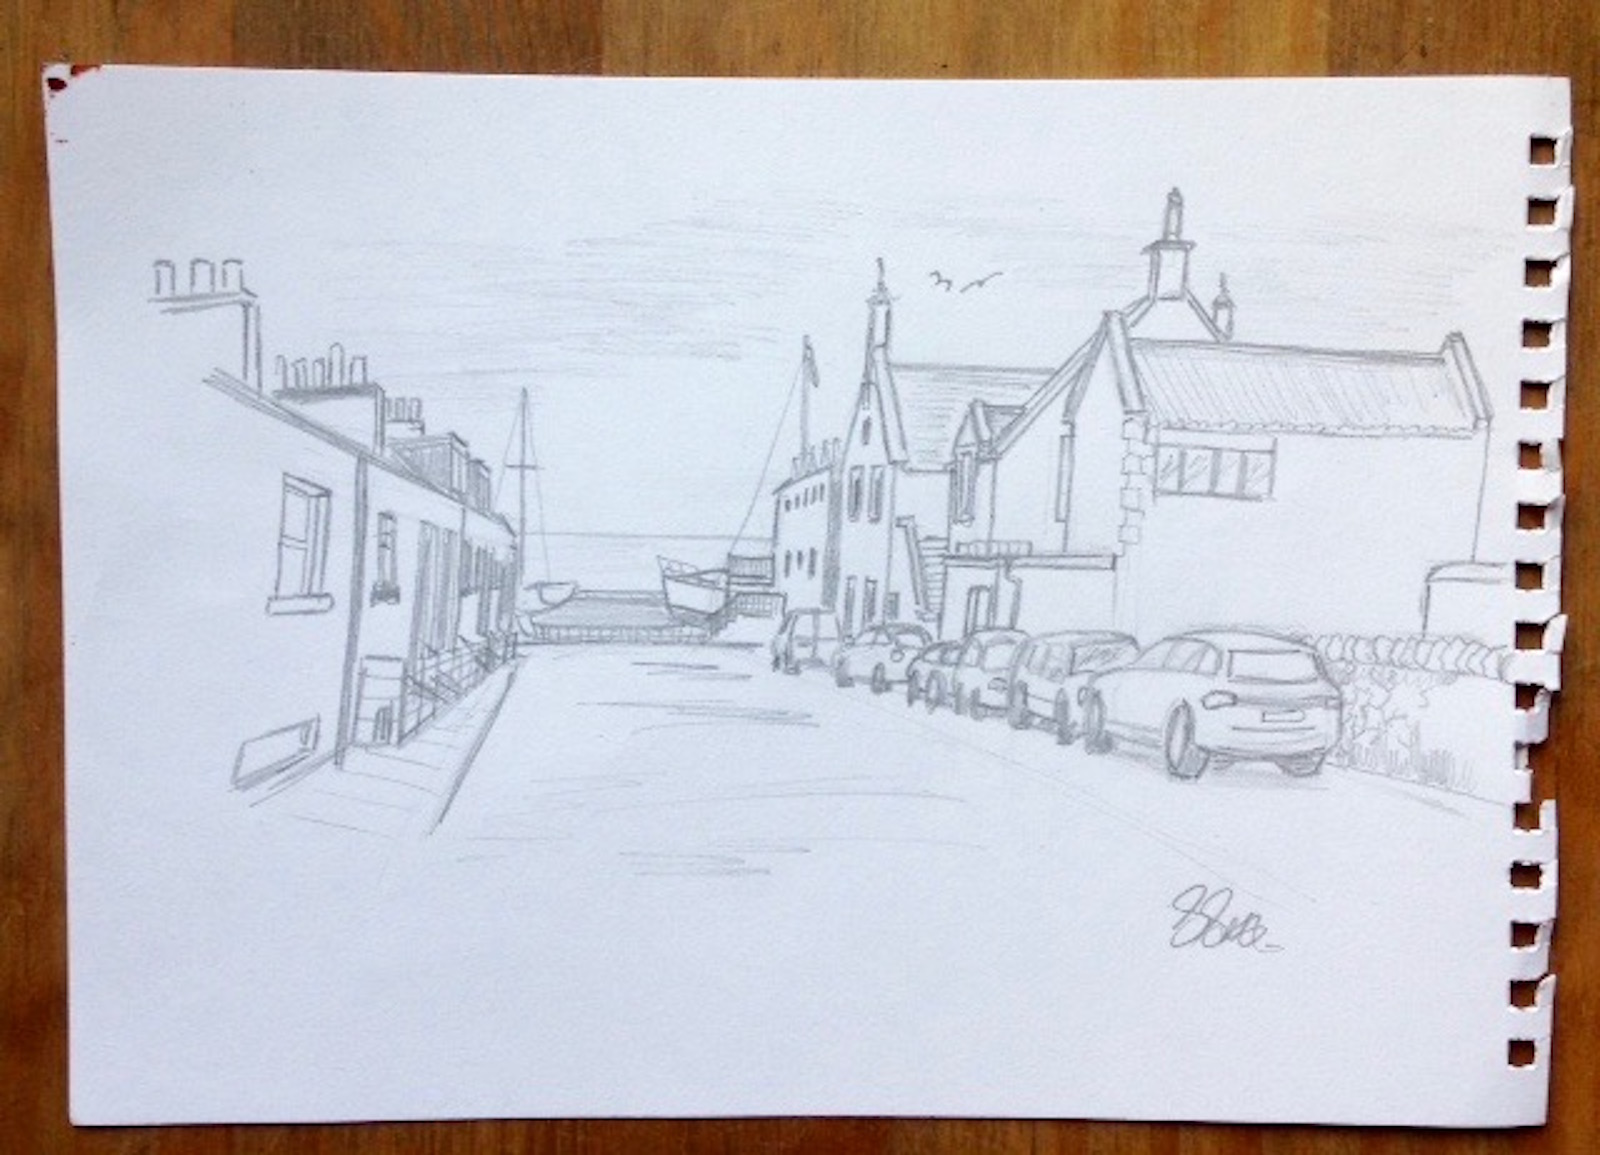 Pencil sketch of North Berwick by Glasgow artist Stephen Scott.